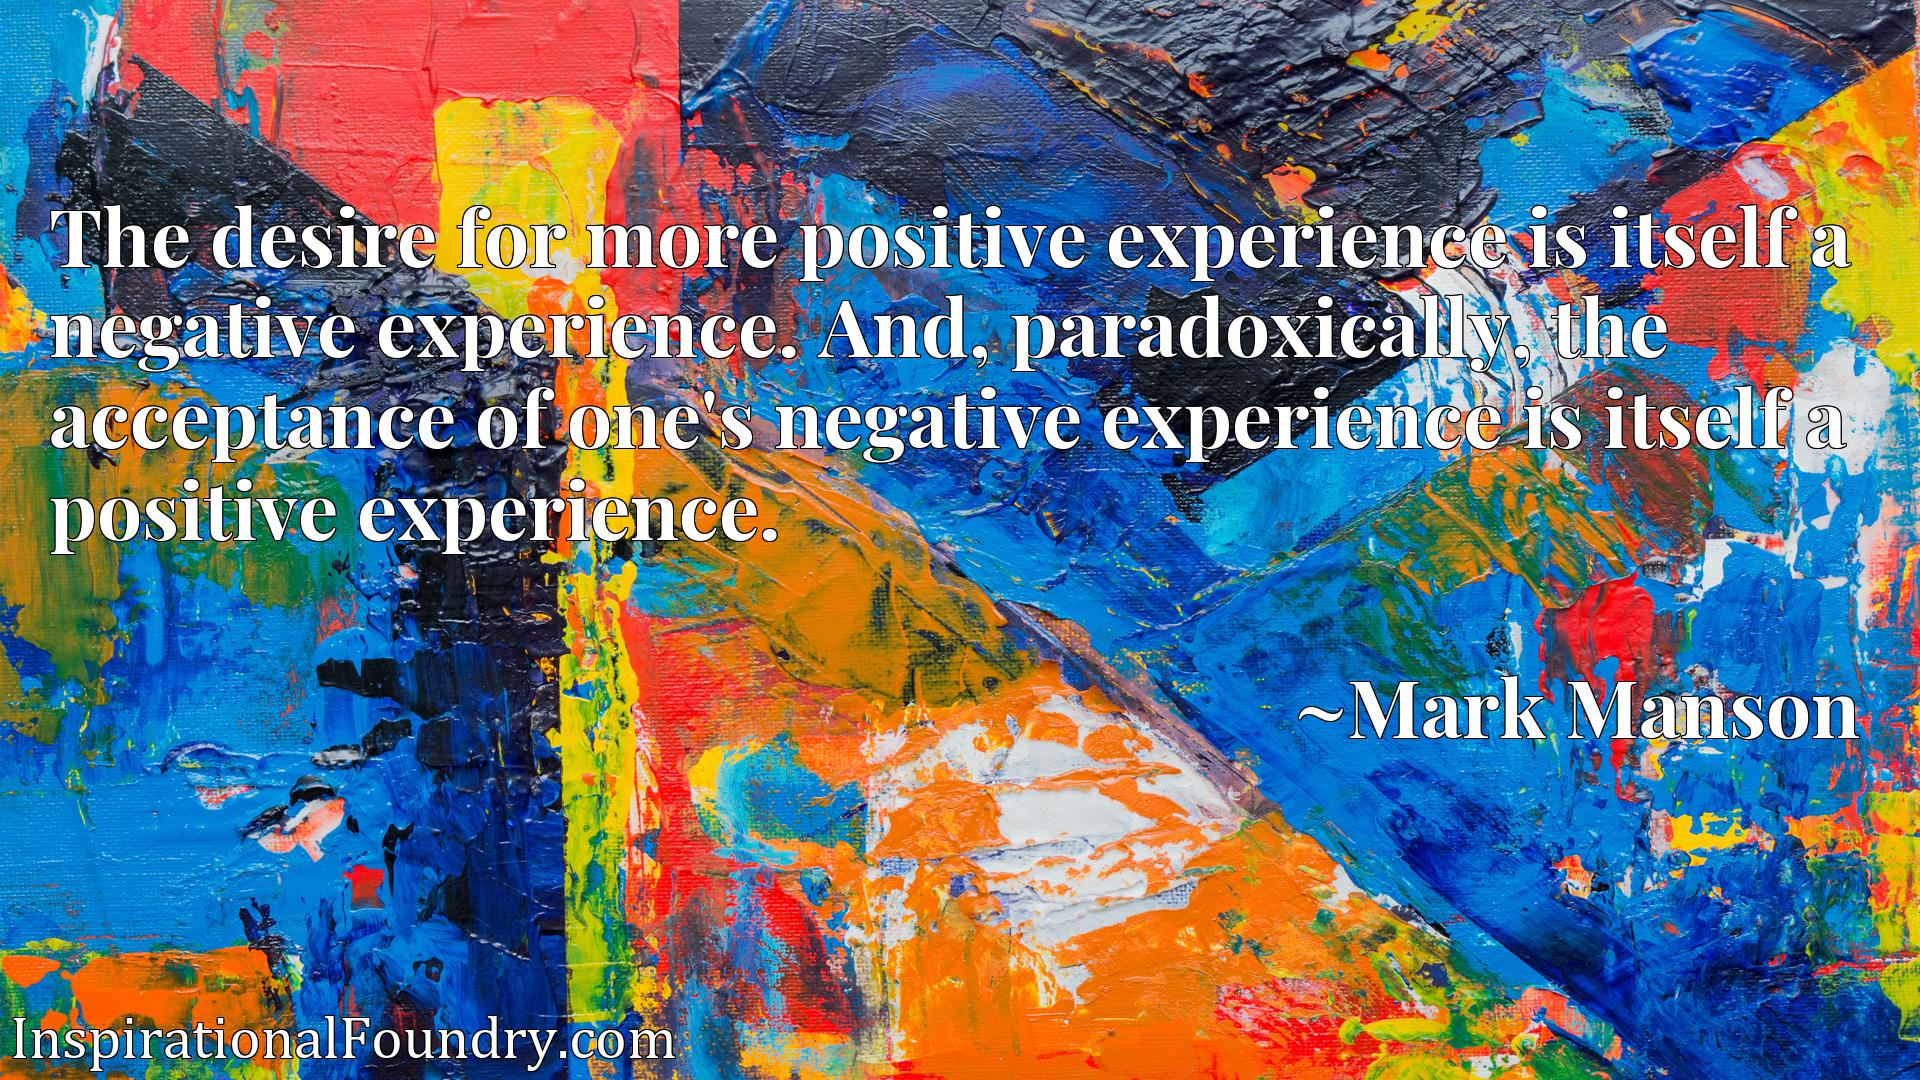 The desire for more positive experience is itself a negative experience. And, paradoxically, the acceptance of one's negative experience is itself a positive experience.